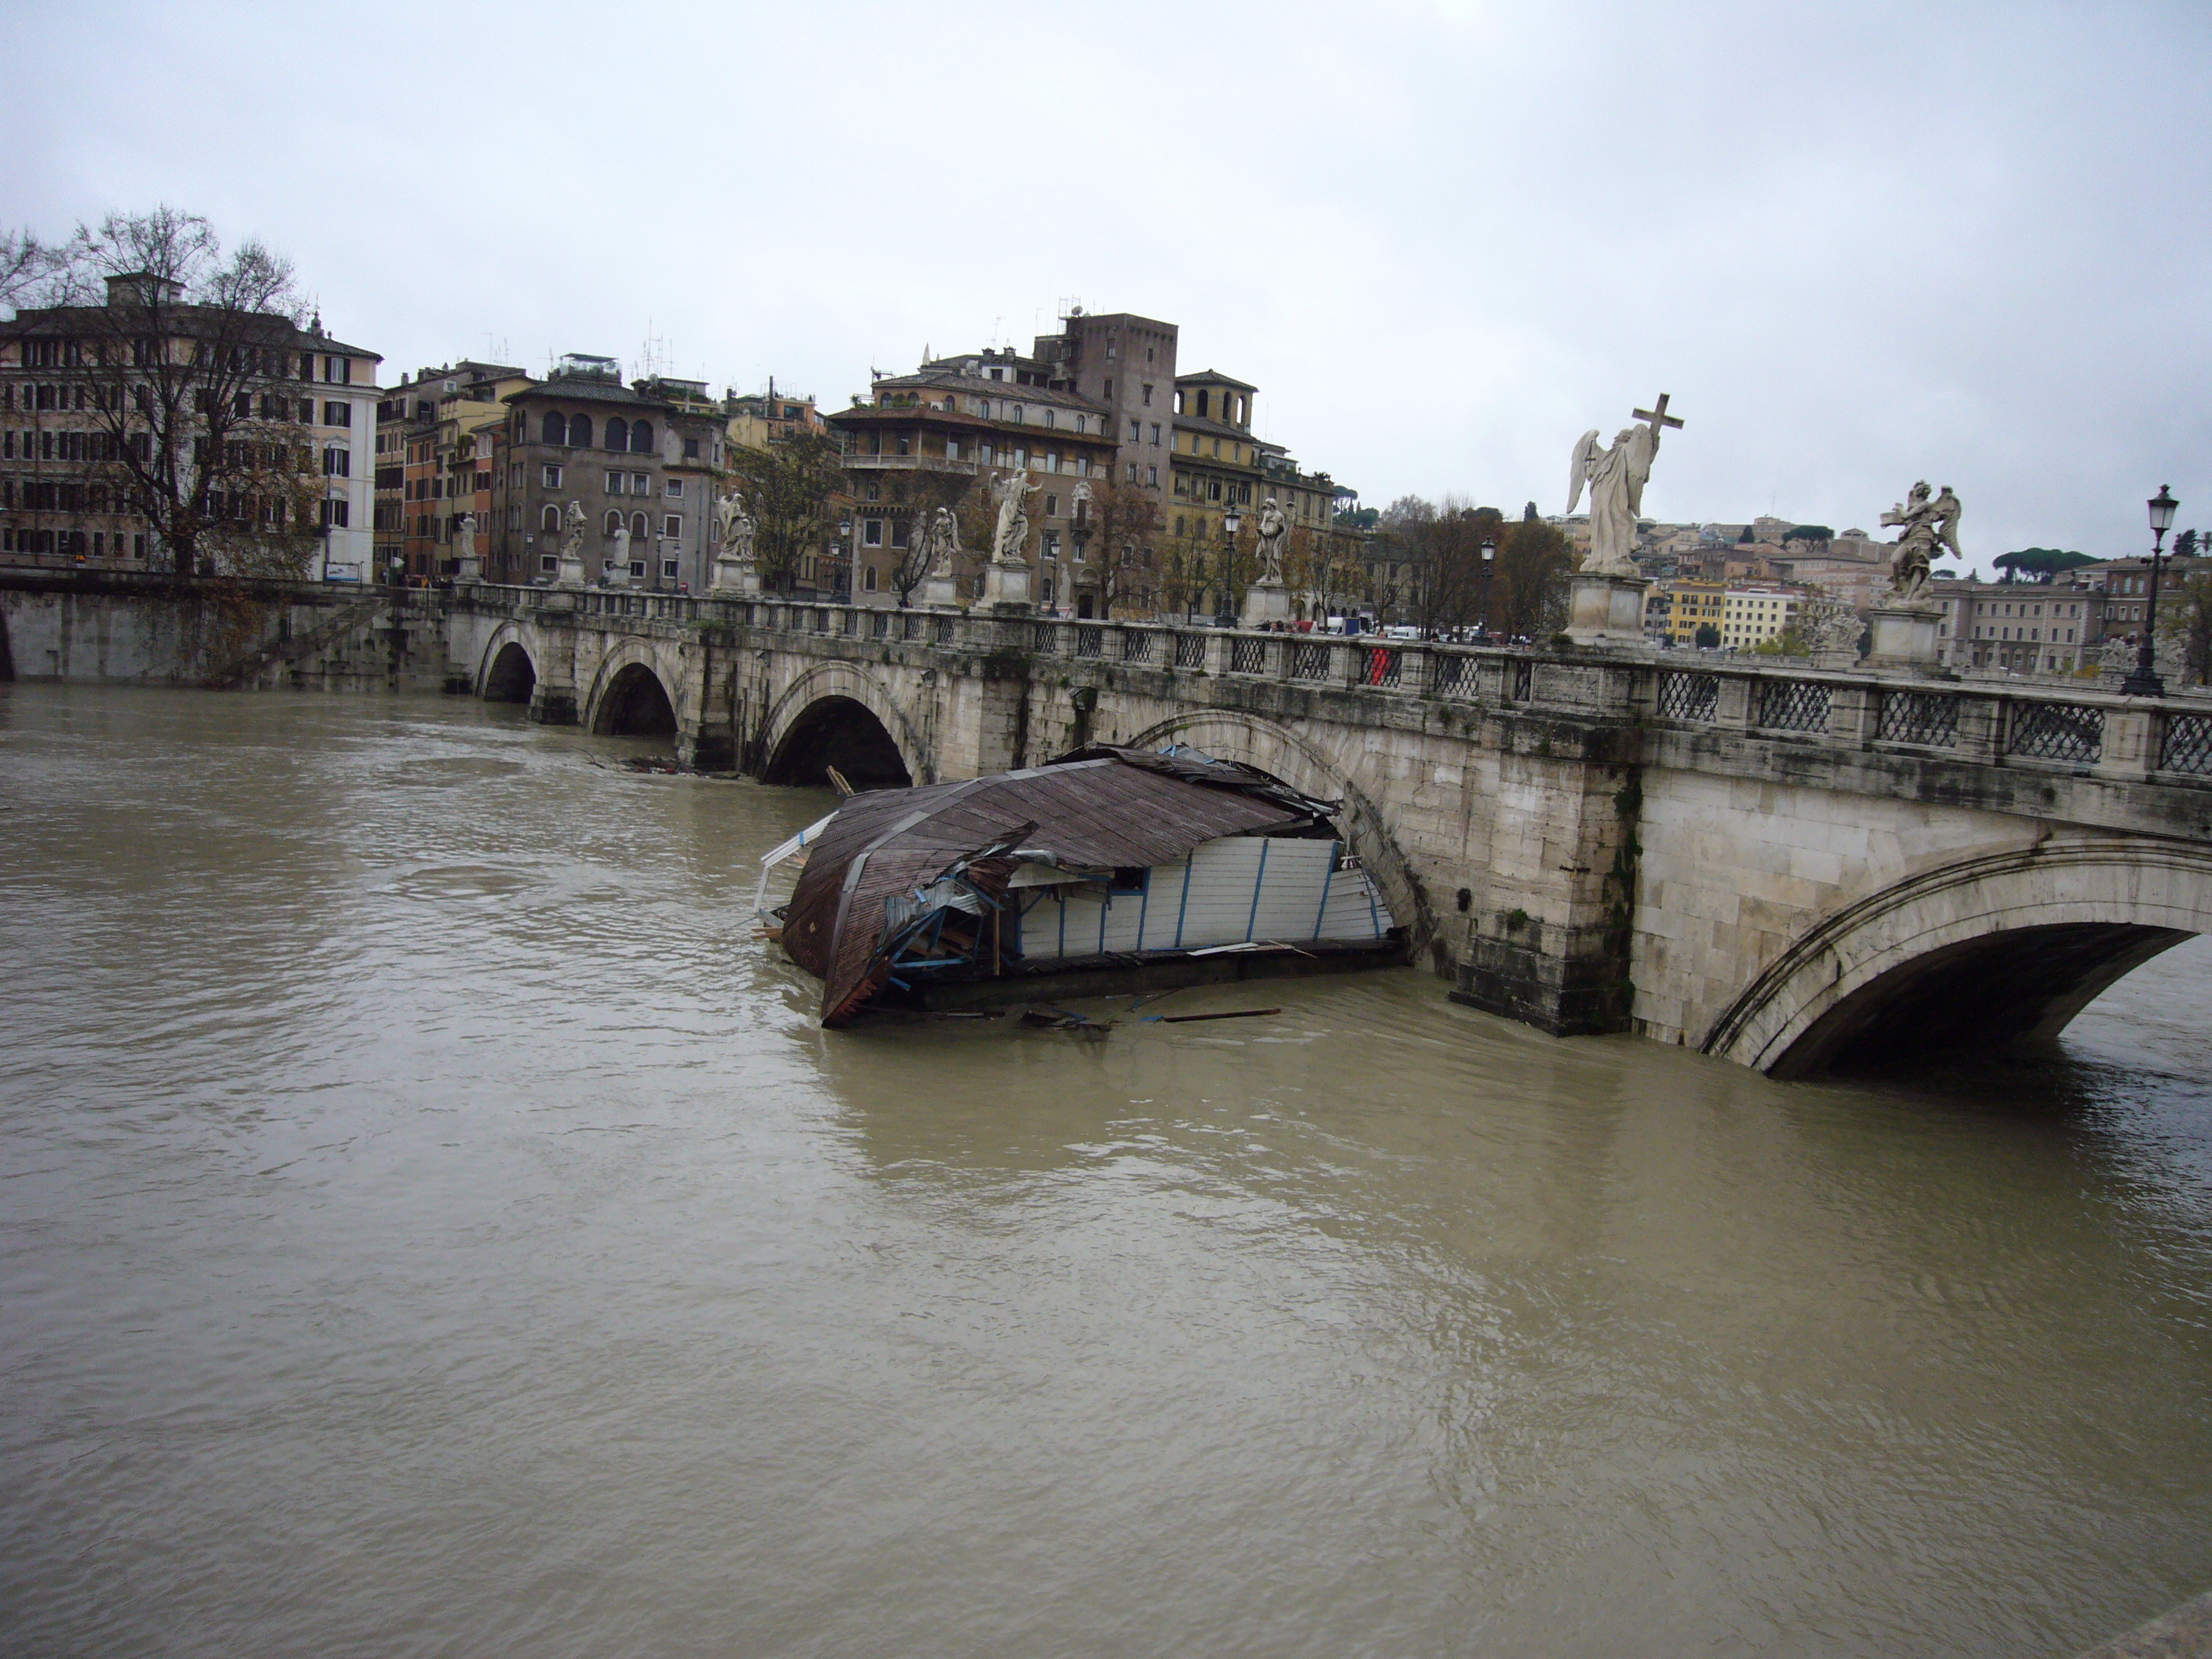 street map of rome with File Piena Del Tevere   Tiber In Flood   Ponte Sant 27angelo   Rome  Italy   12 Dec  2008 on A Meeting Two Ancient Empires Chinese Skeletons Roman Cemetery Promise Rewrite History moreover 4607096759 furthermore Roma together with Ferries Food Films In Venice likewise Piazza Navona 28745.